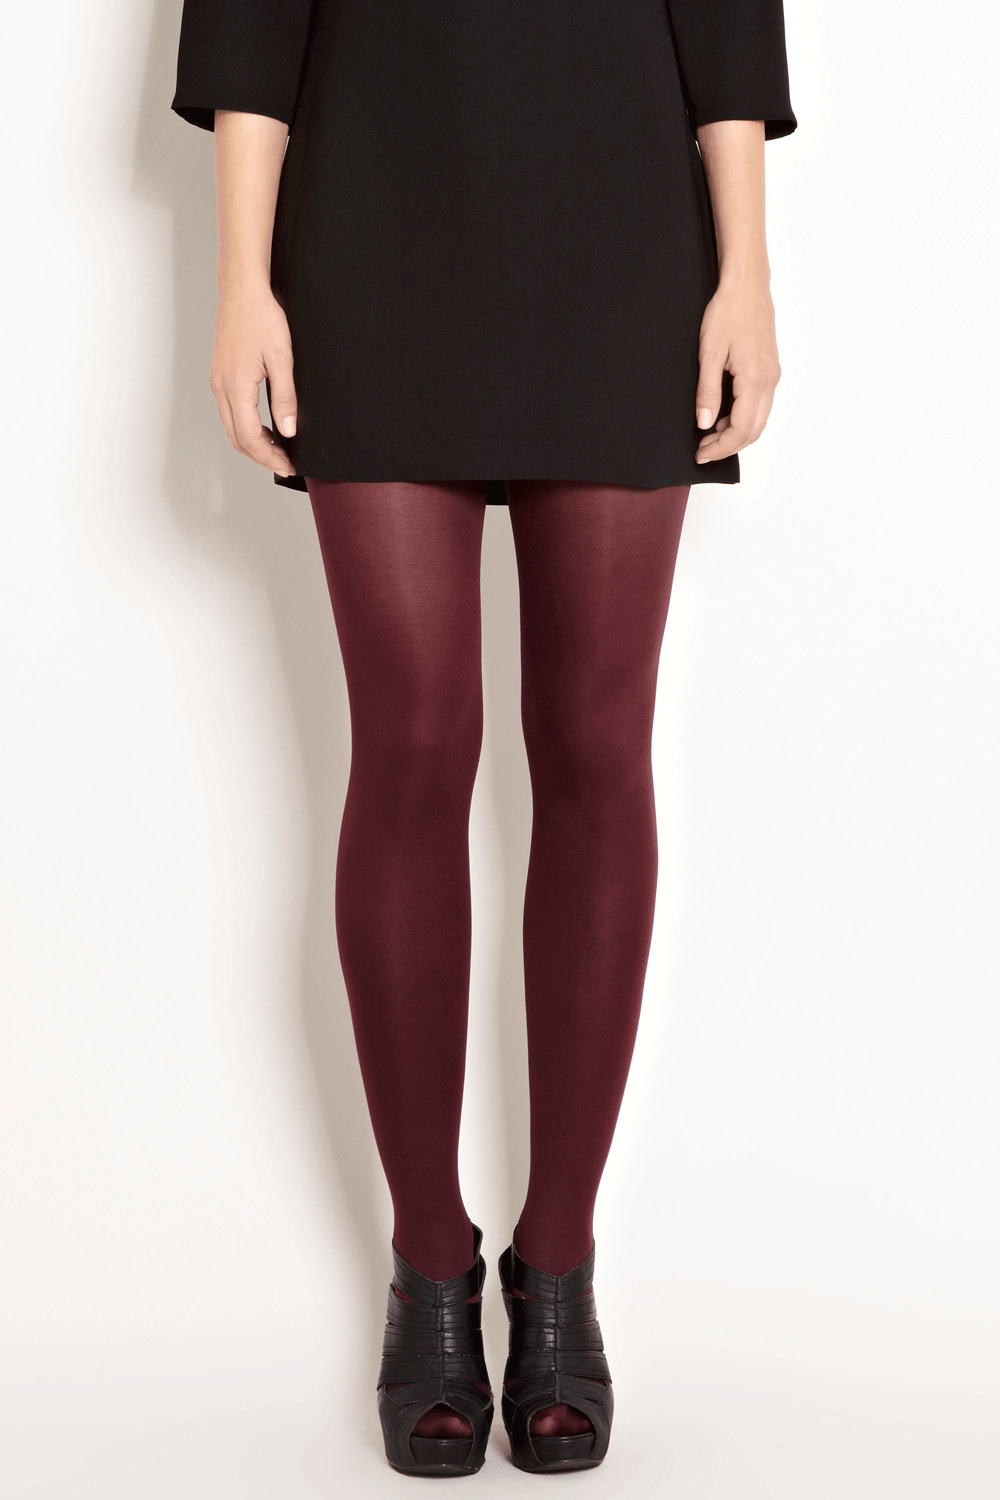 Dark Red Tights With A Black Dress Loveeee Clothes Fashion Red Tights [ 1500 x 1000 Pixel ]